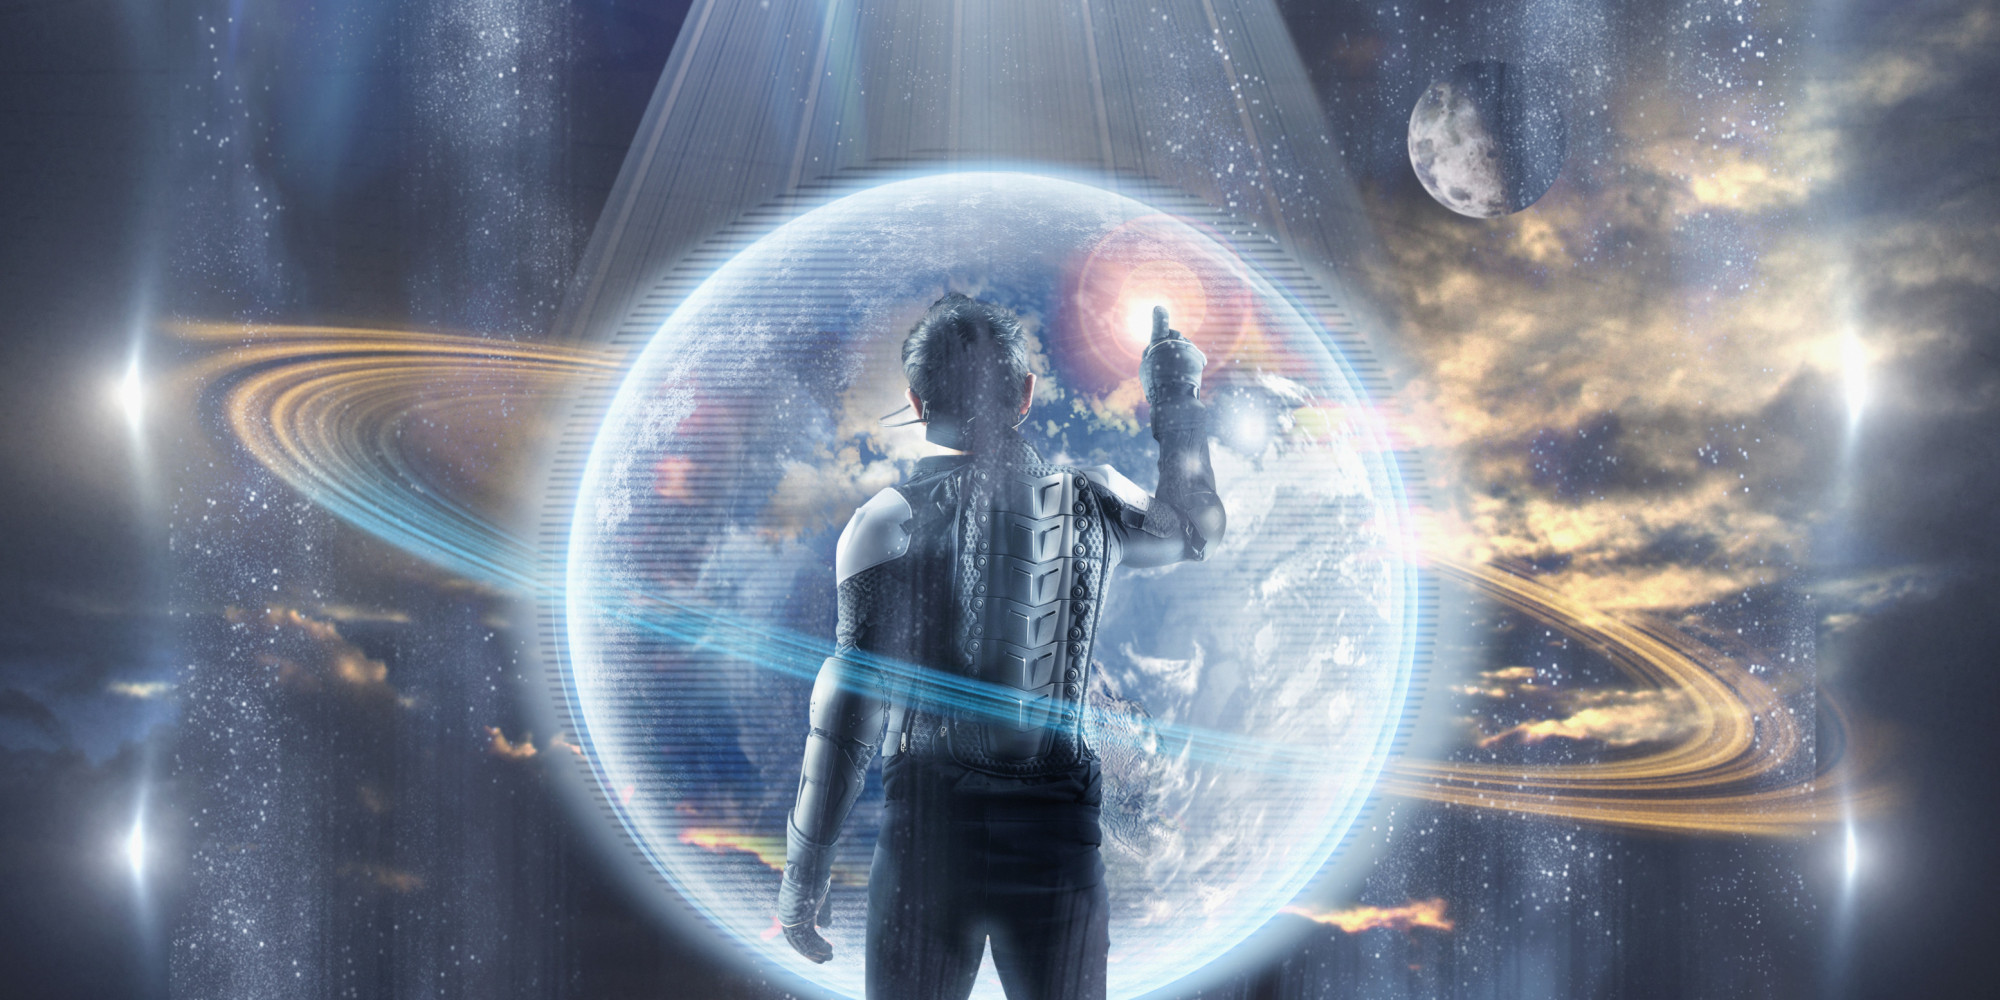 Physicists To Test If The Universe Is A Hologram | HuffPost UK